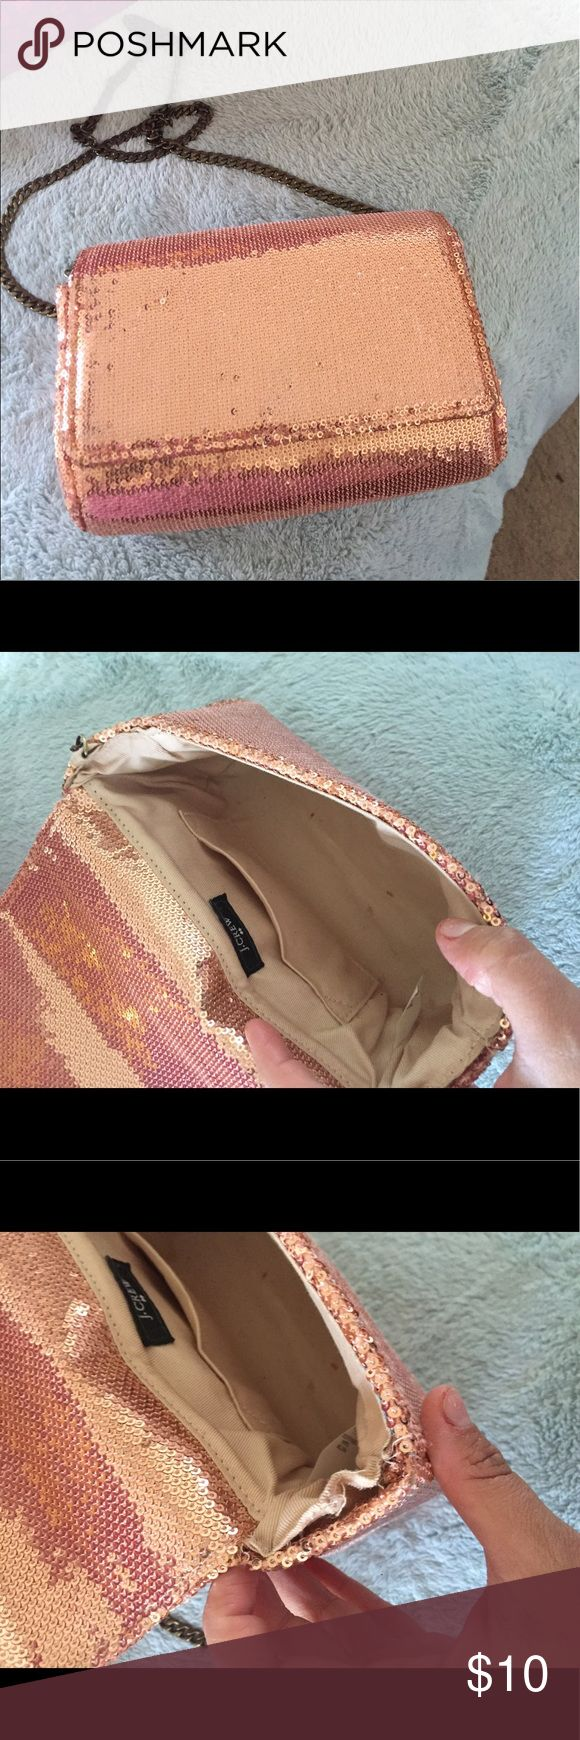 J Crew Rose Gold Sequin Clutch Beautiful rose gold sequined clutch. Has some wear and stitching opening up, chain strap is broken on one side but can be easily repaired. J Crew Bags Clutches & Wristlets